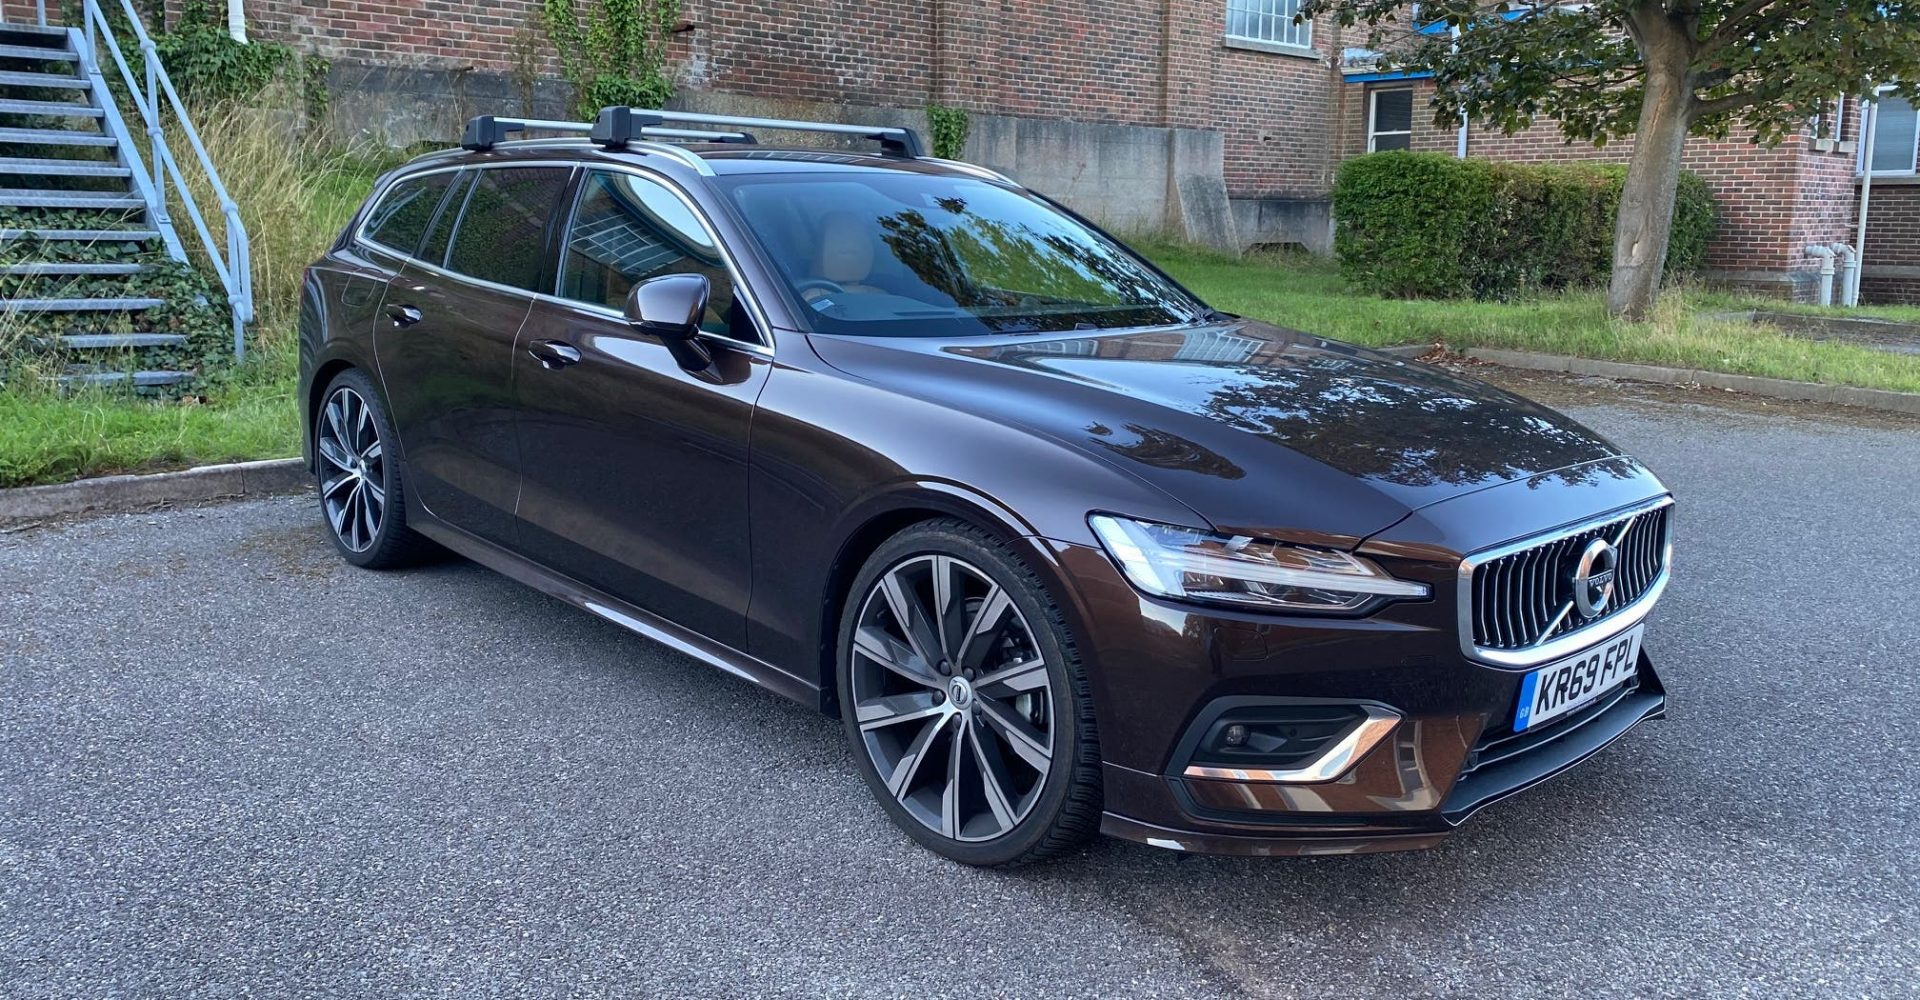 Long-term report: Here's why an estate will always beat an SUV in my eyes